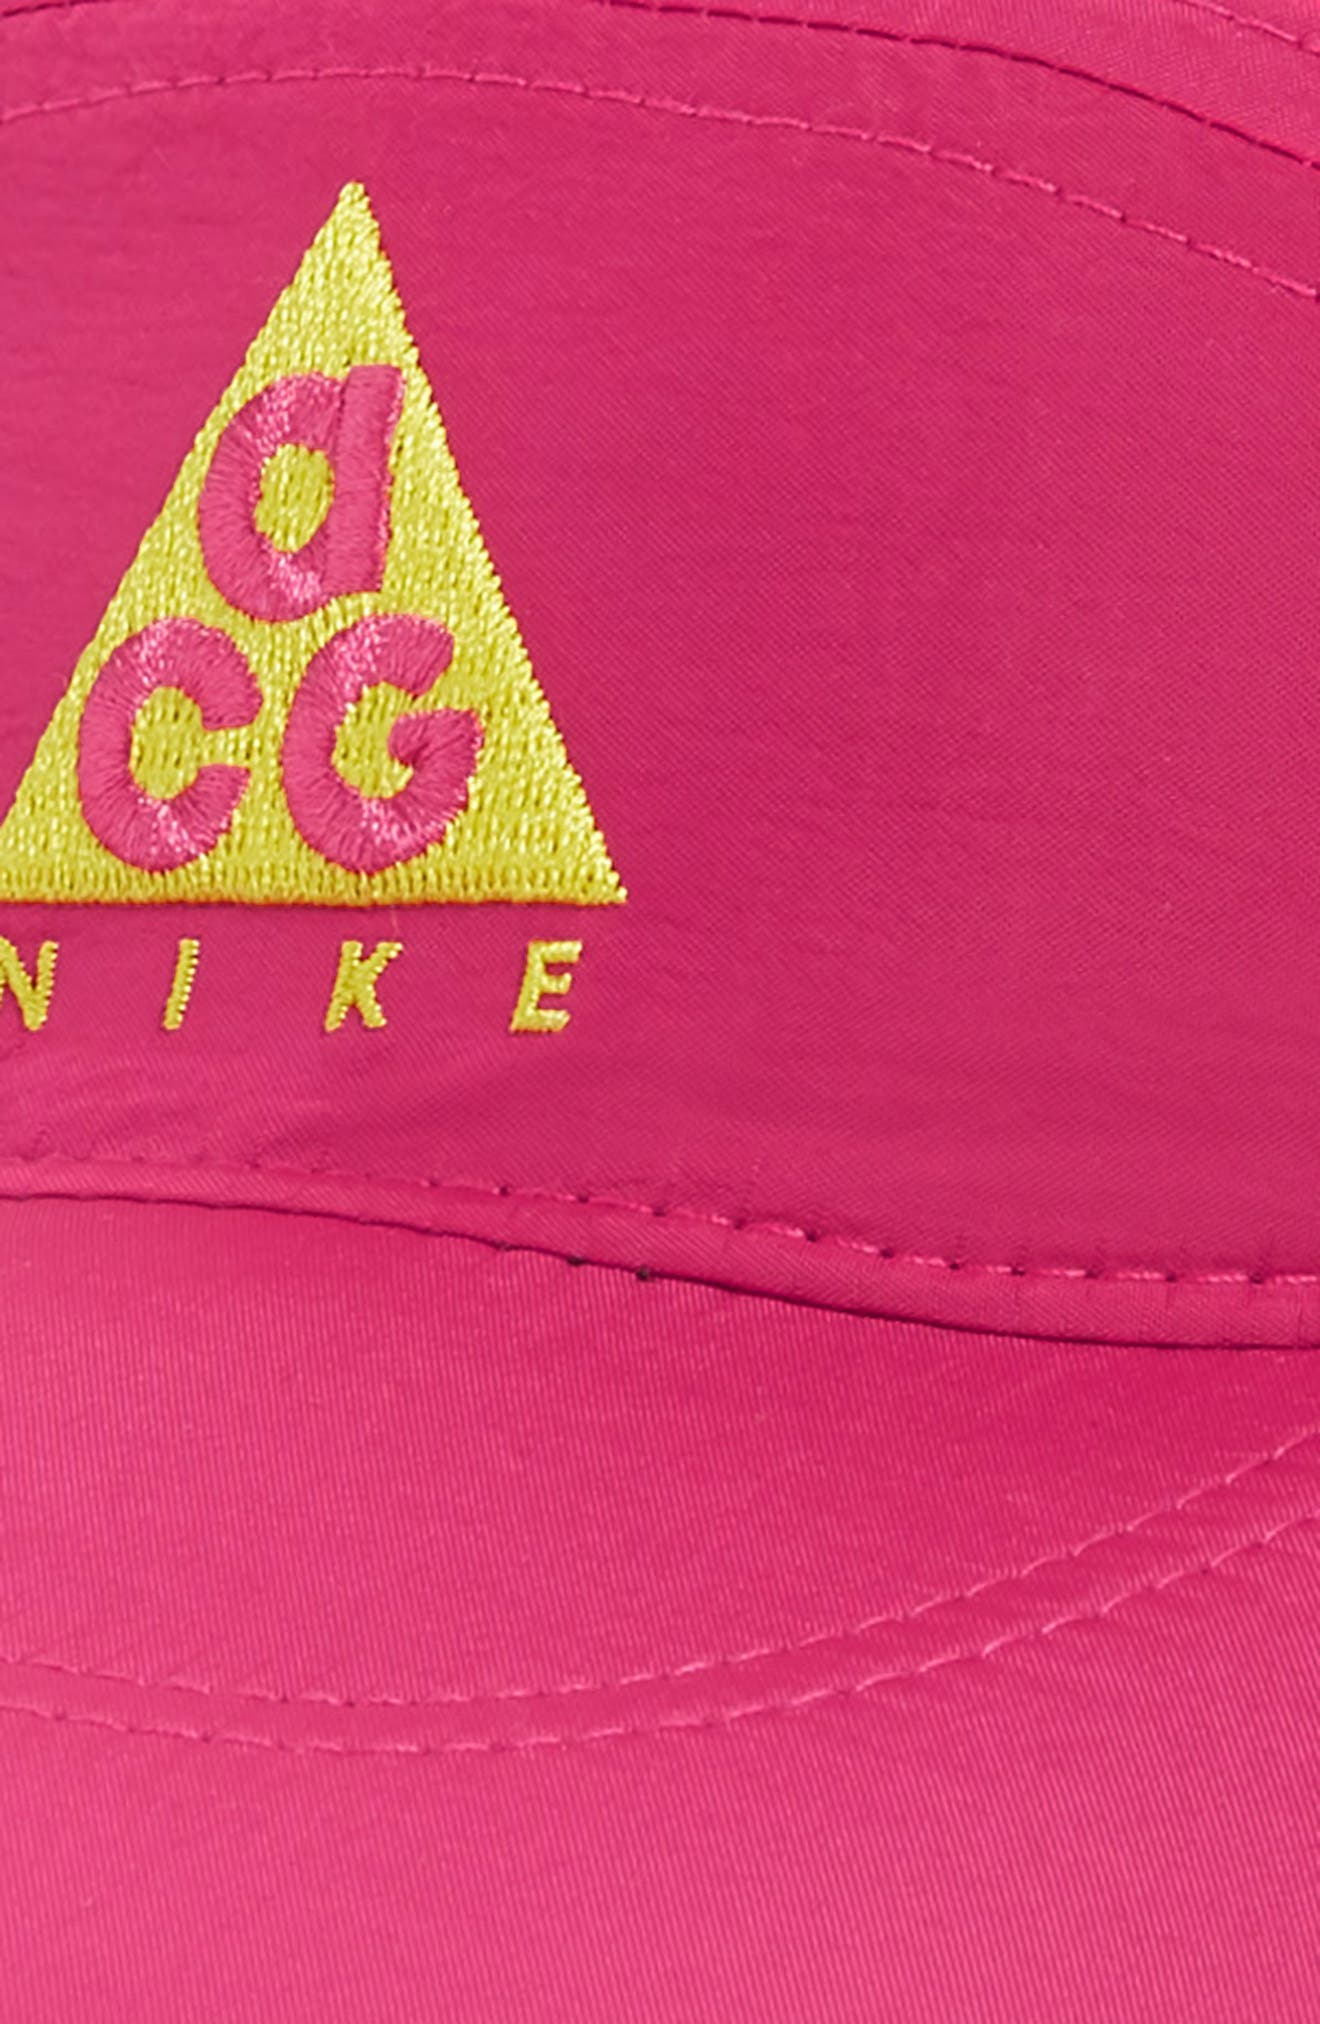 Sportswear ACG Tailwind Cap,                             Alternate thumbnail 3, color,                             RUSH PINK/OPTI YELLOW